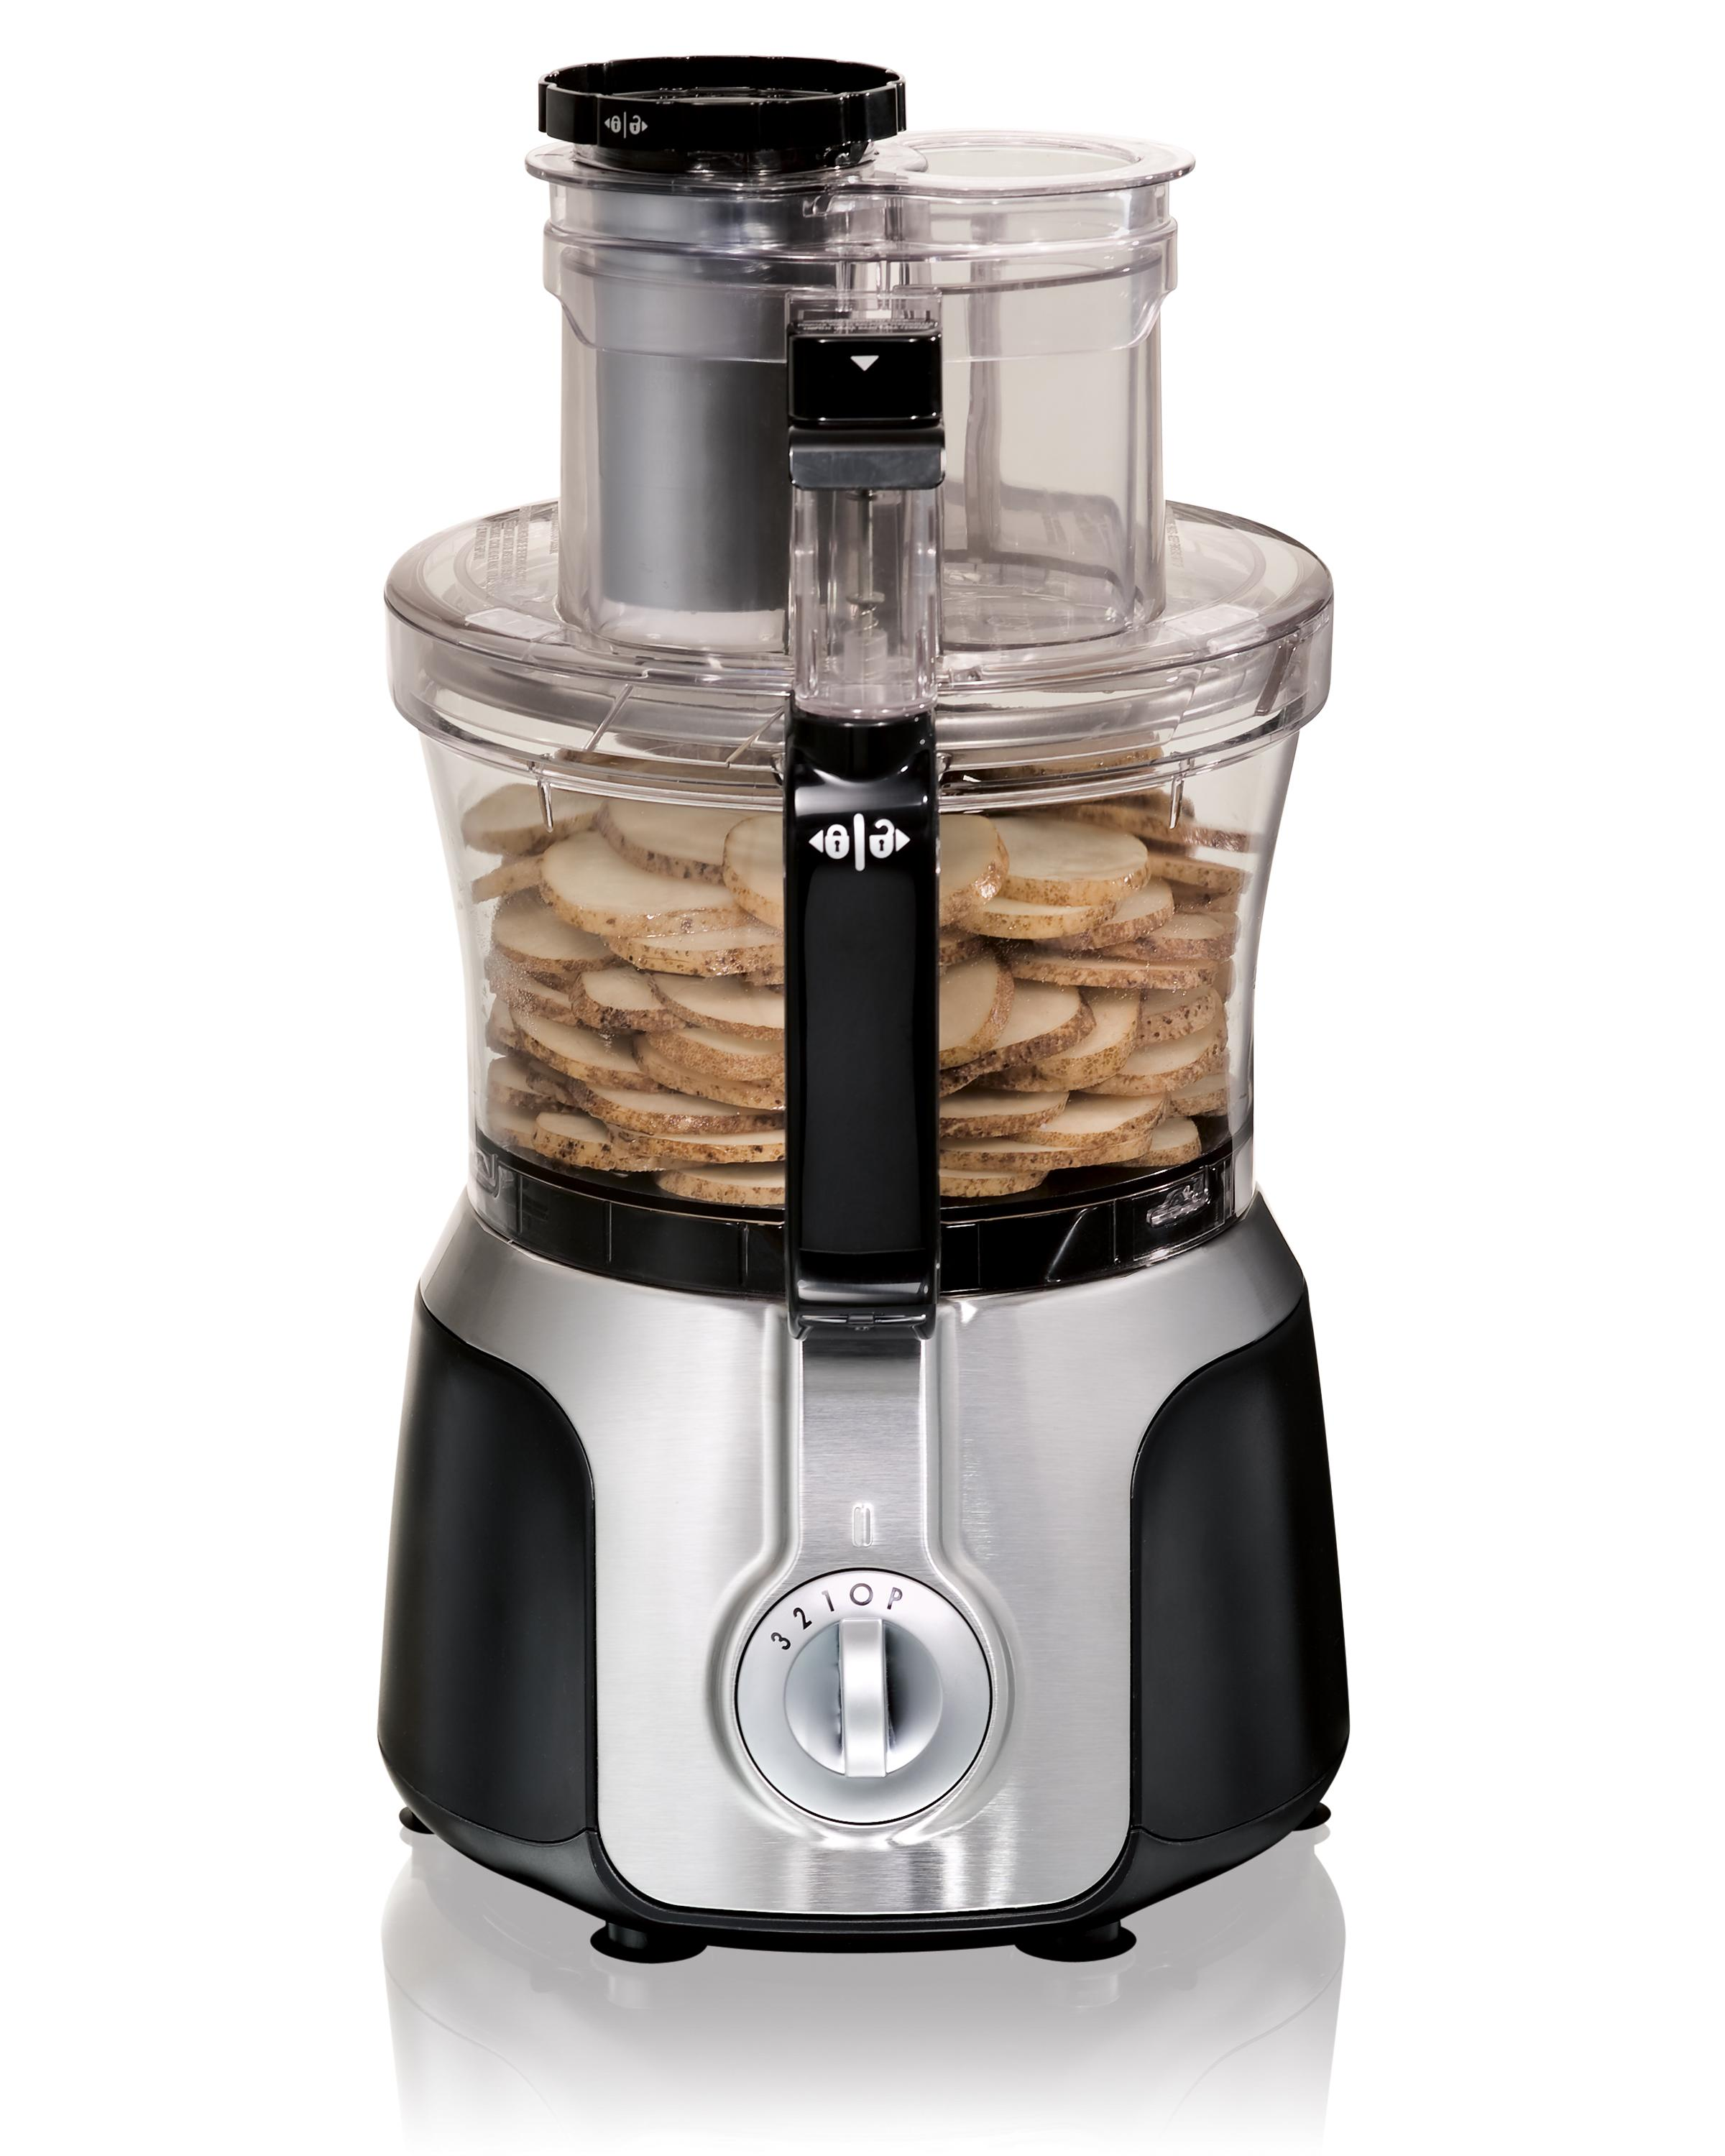 Large Commercial Food Processor